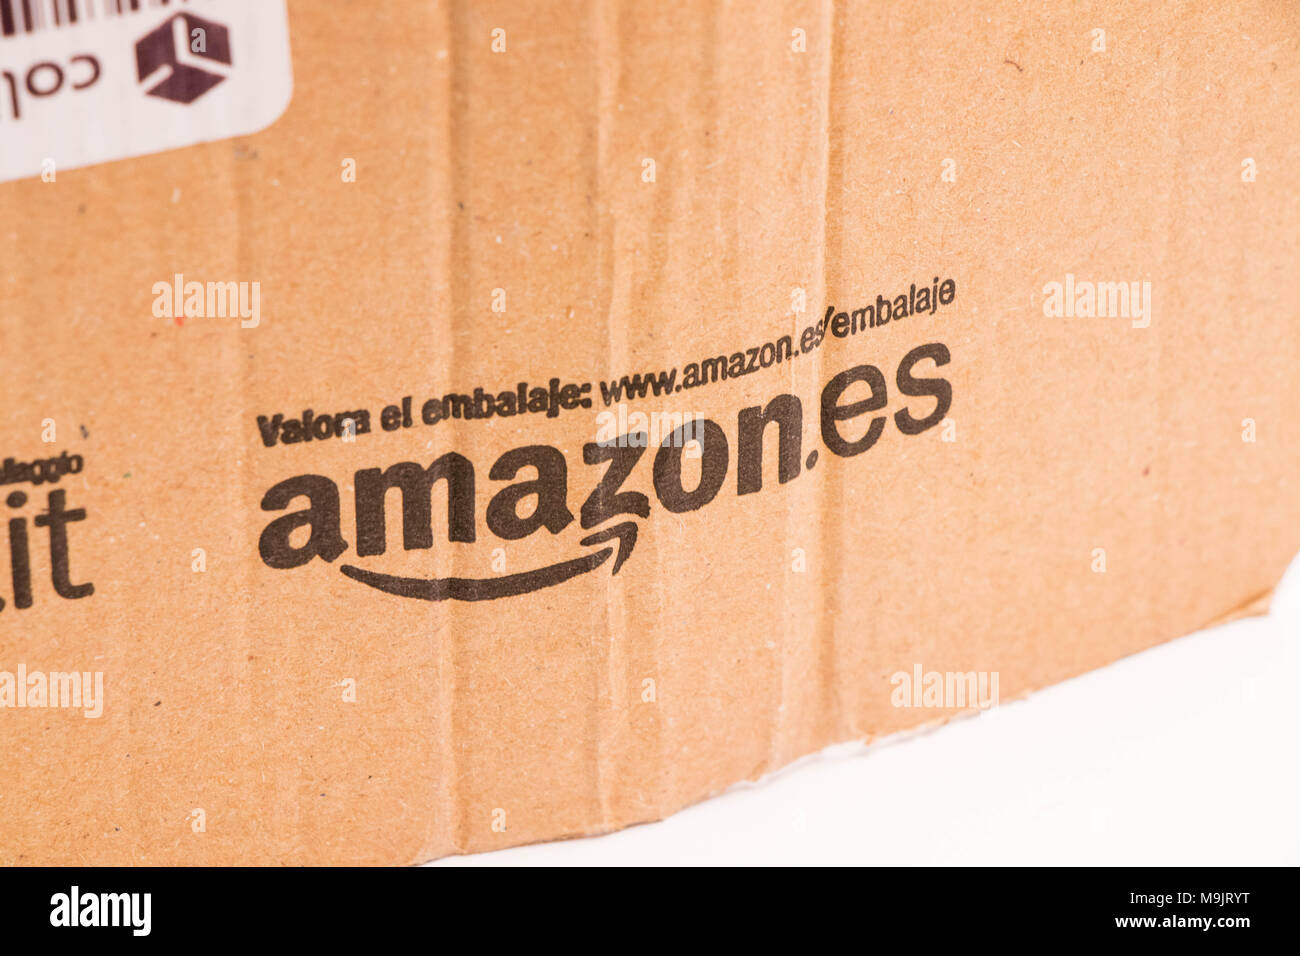 Amazon card board package mail espagna - Stock Image